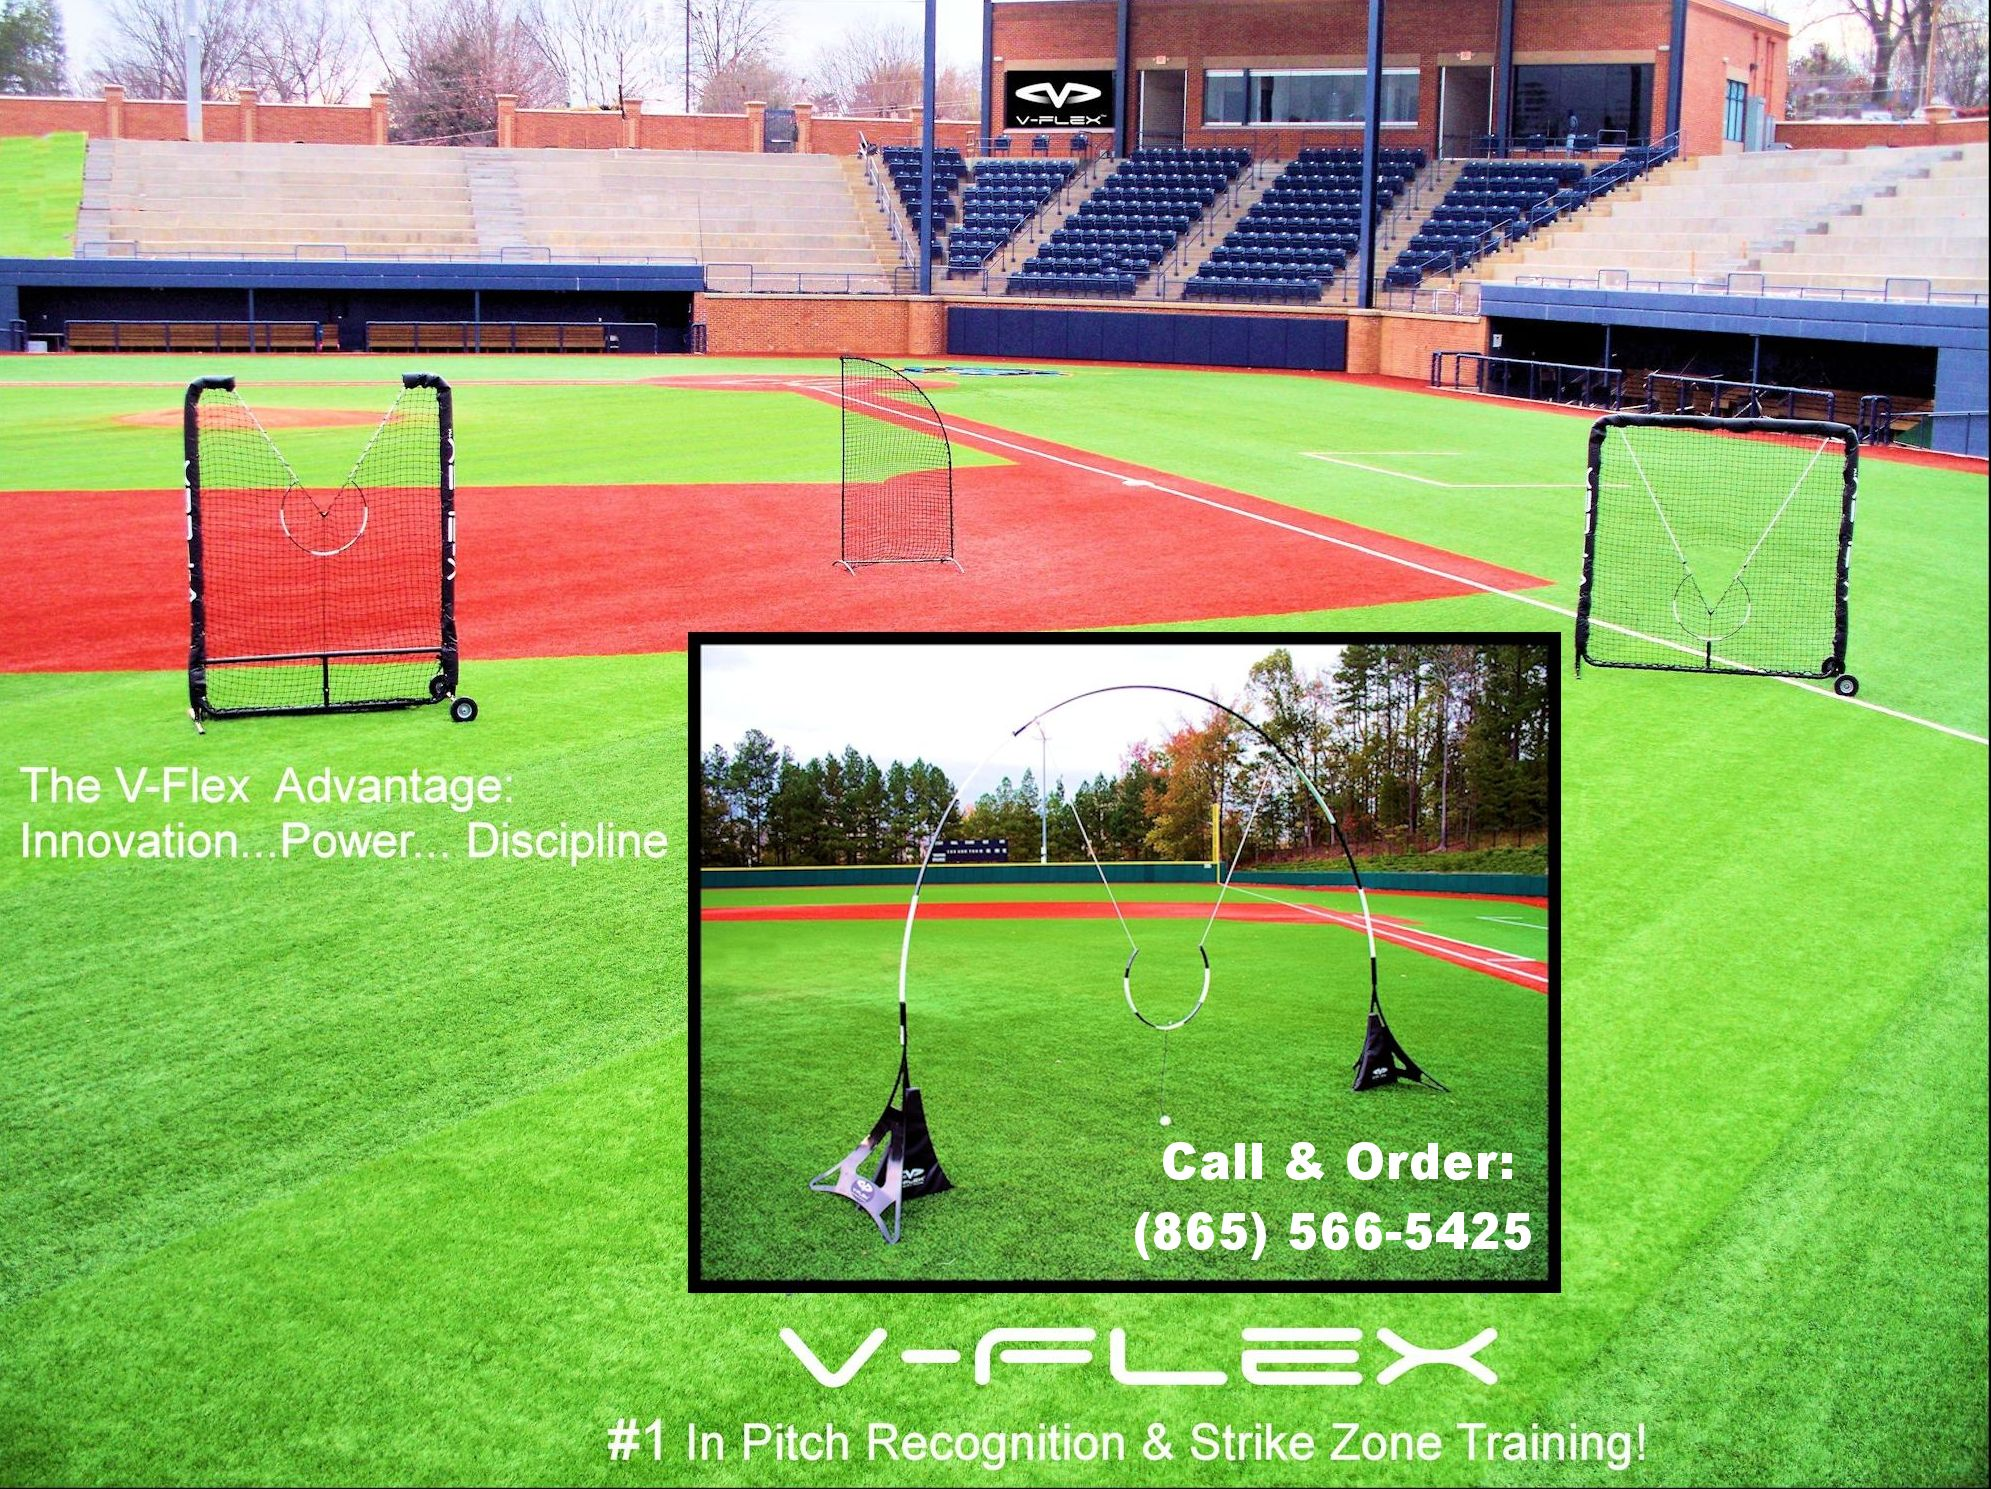 v-flex-intro-new-call-and-order.jpg